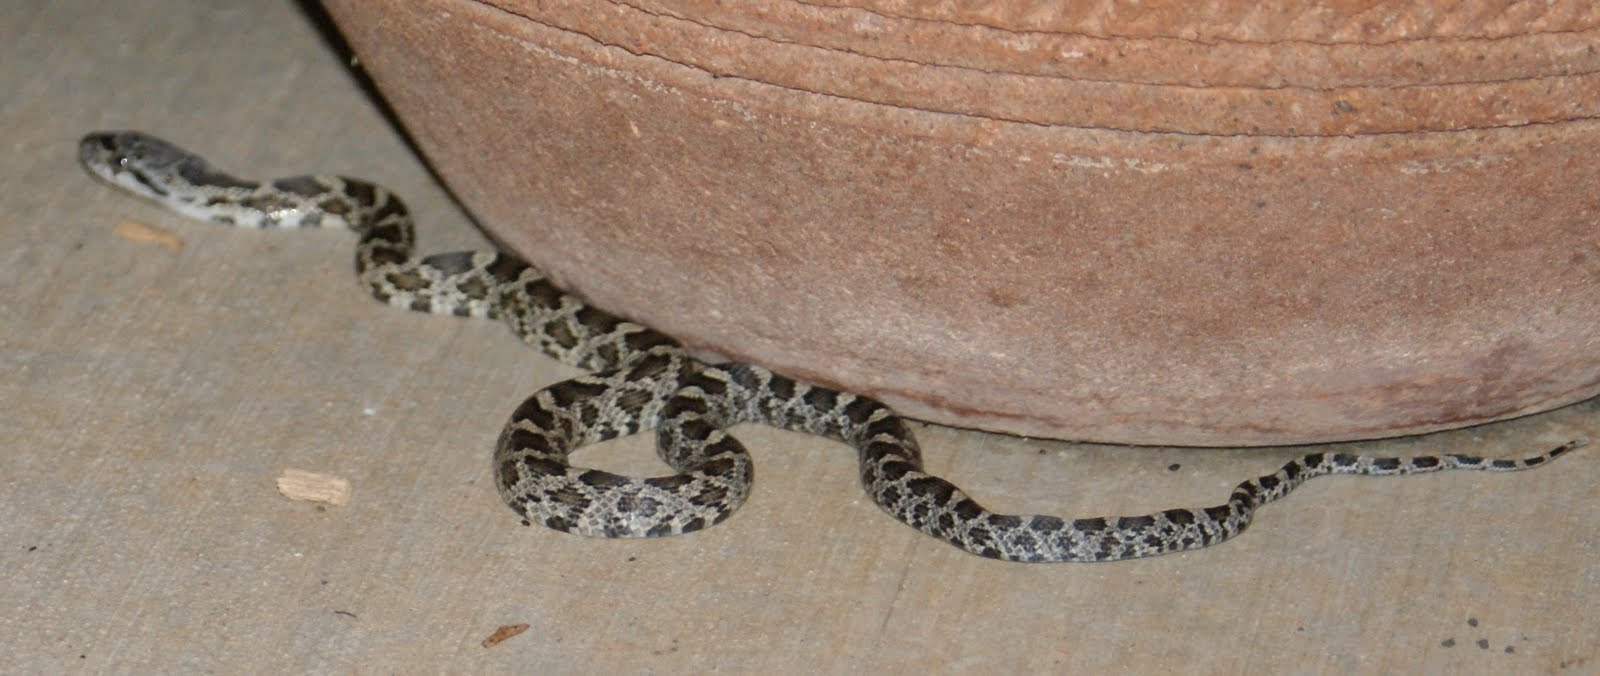 How to Deal With a Snake in the House: 14